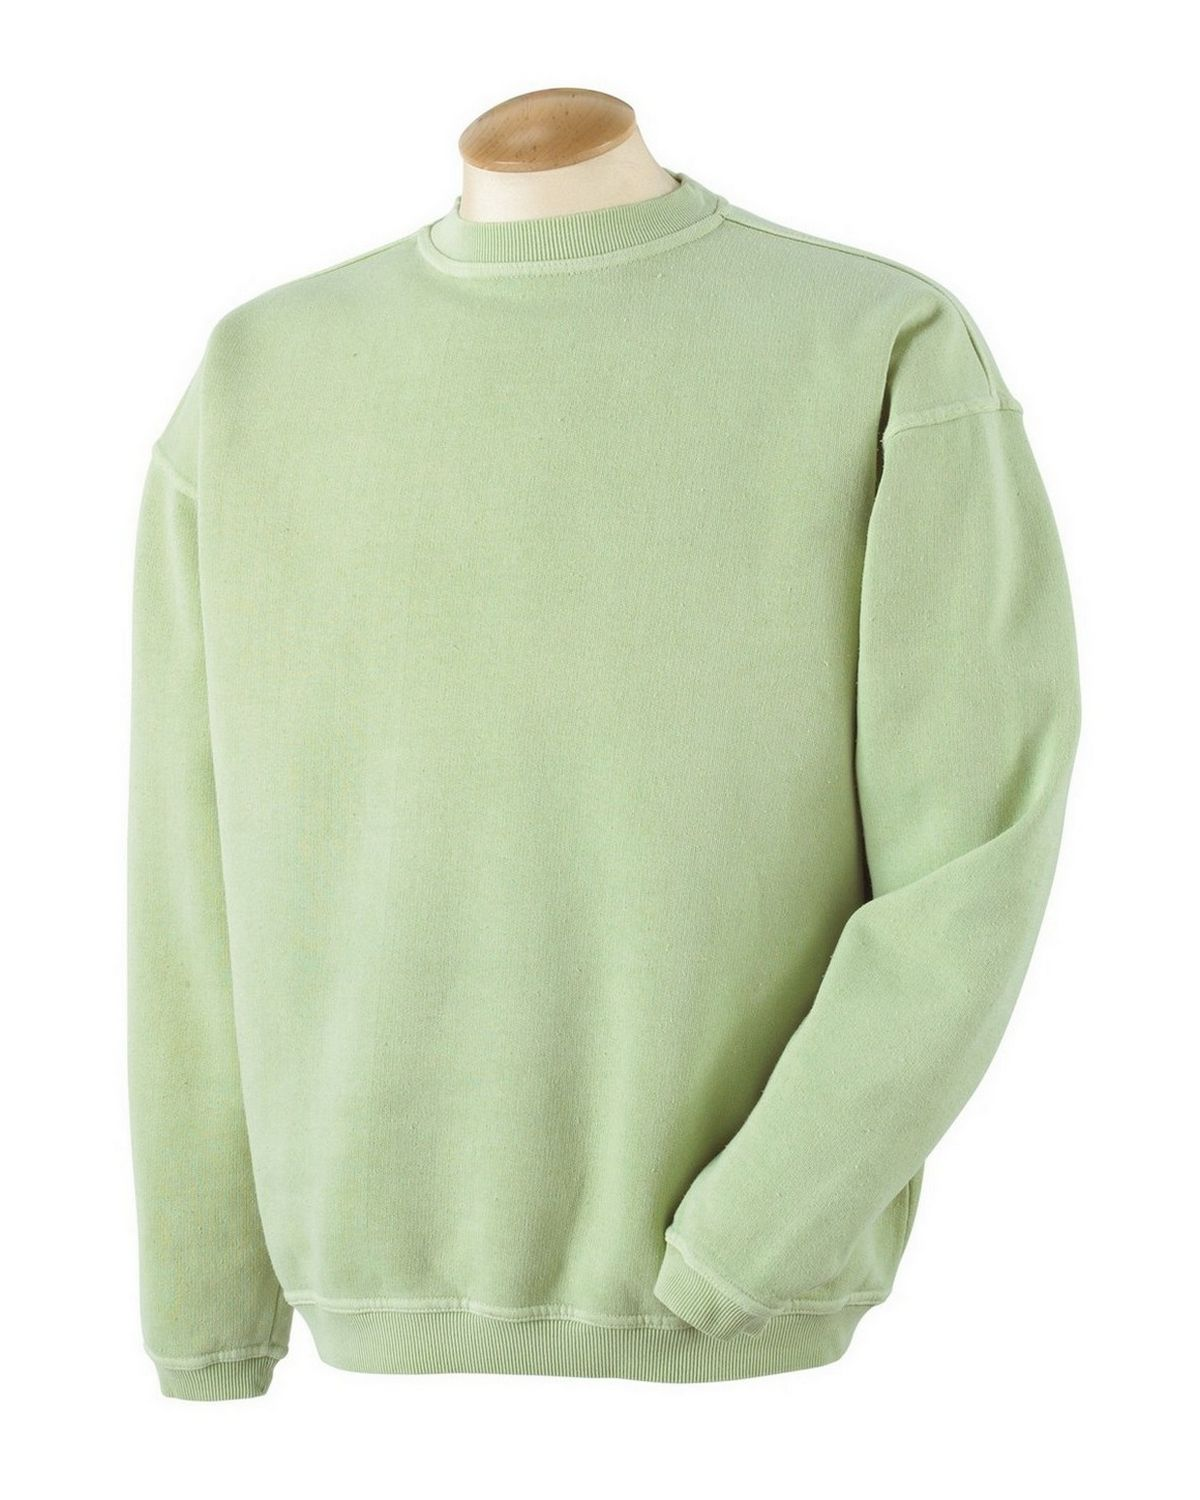 Authentic Pigment 11561 Pigment-Dyed Ringspun Cotton Fleece Crew - Celery - S 11561